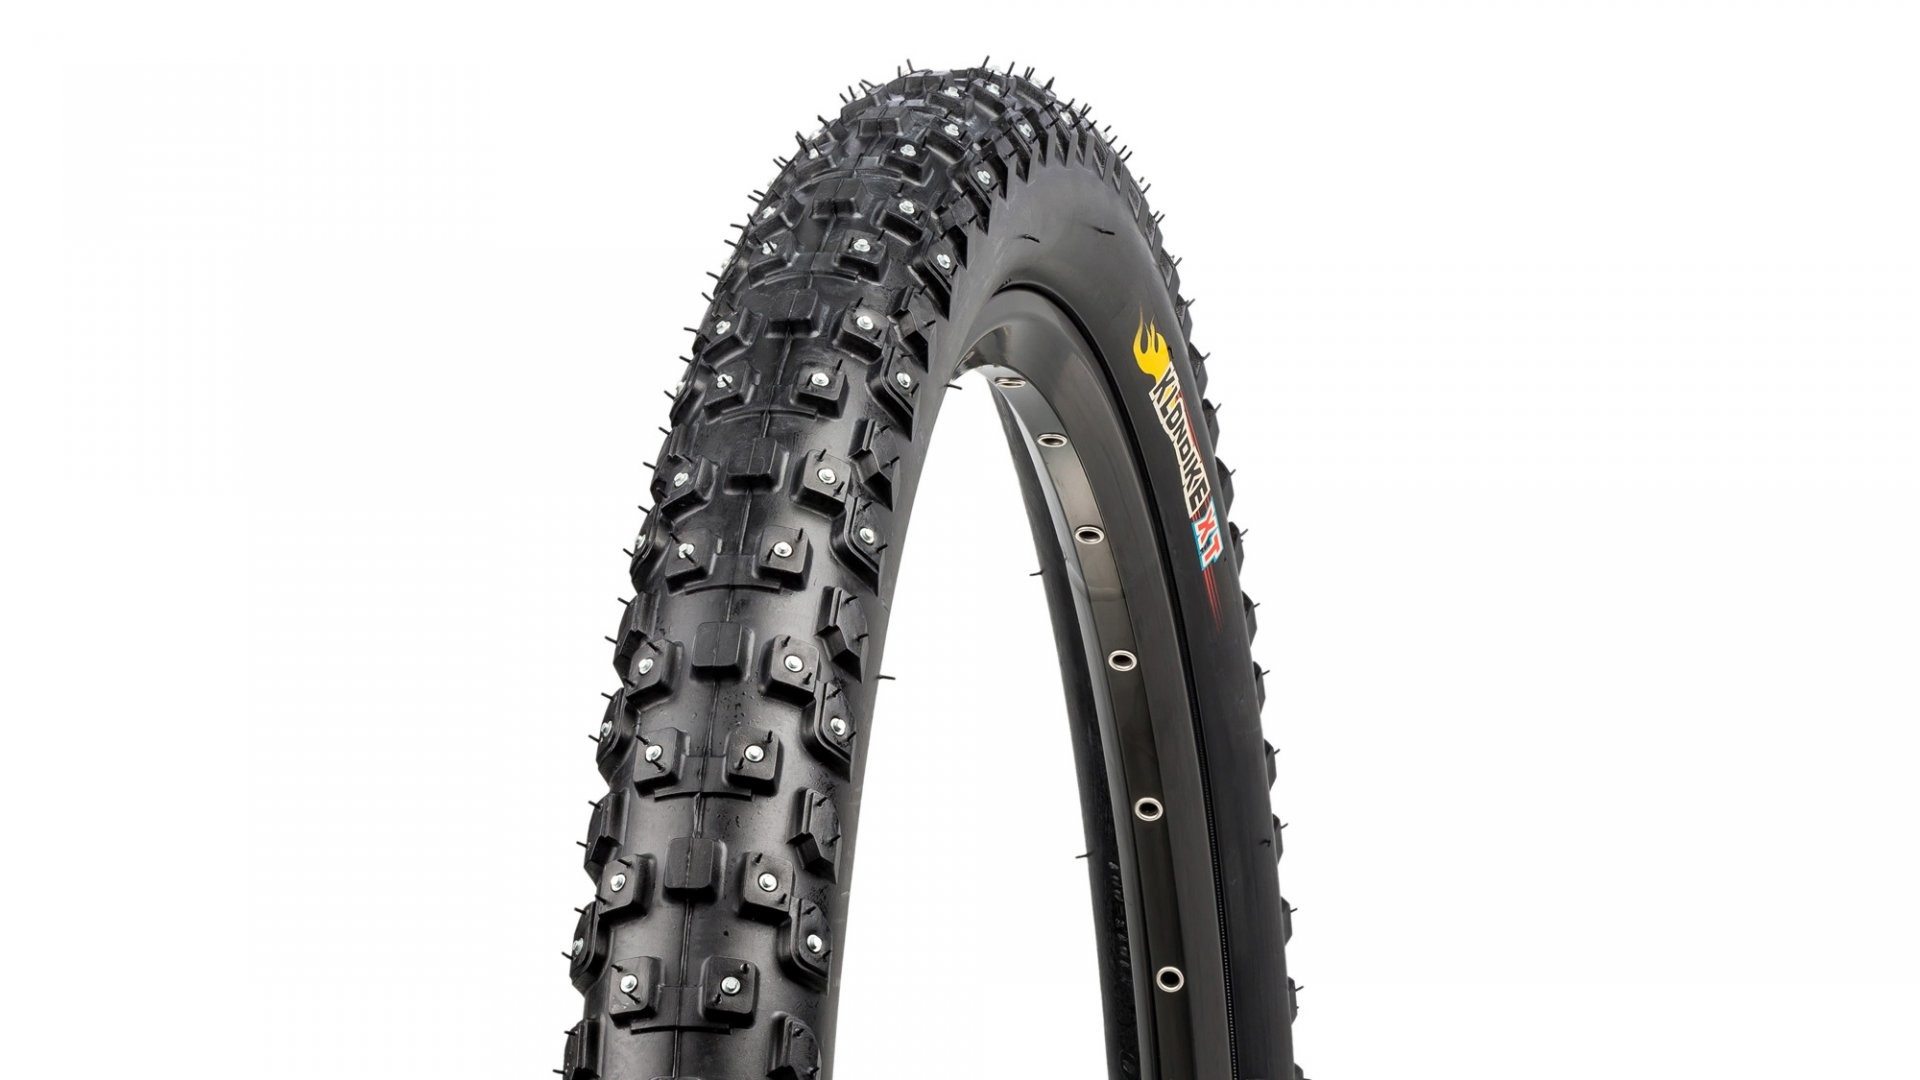 Gomme chiodate MTB